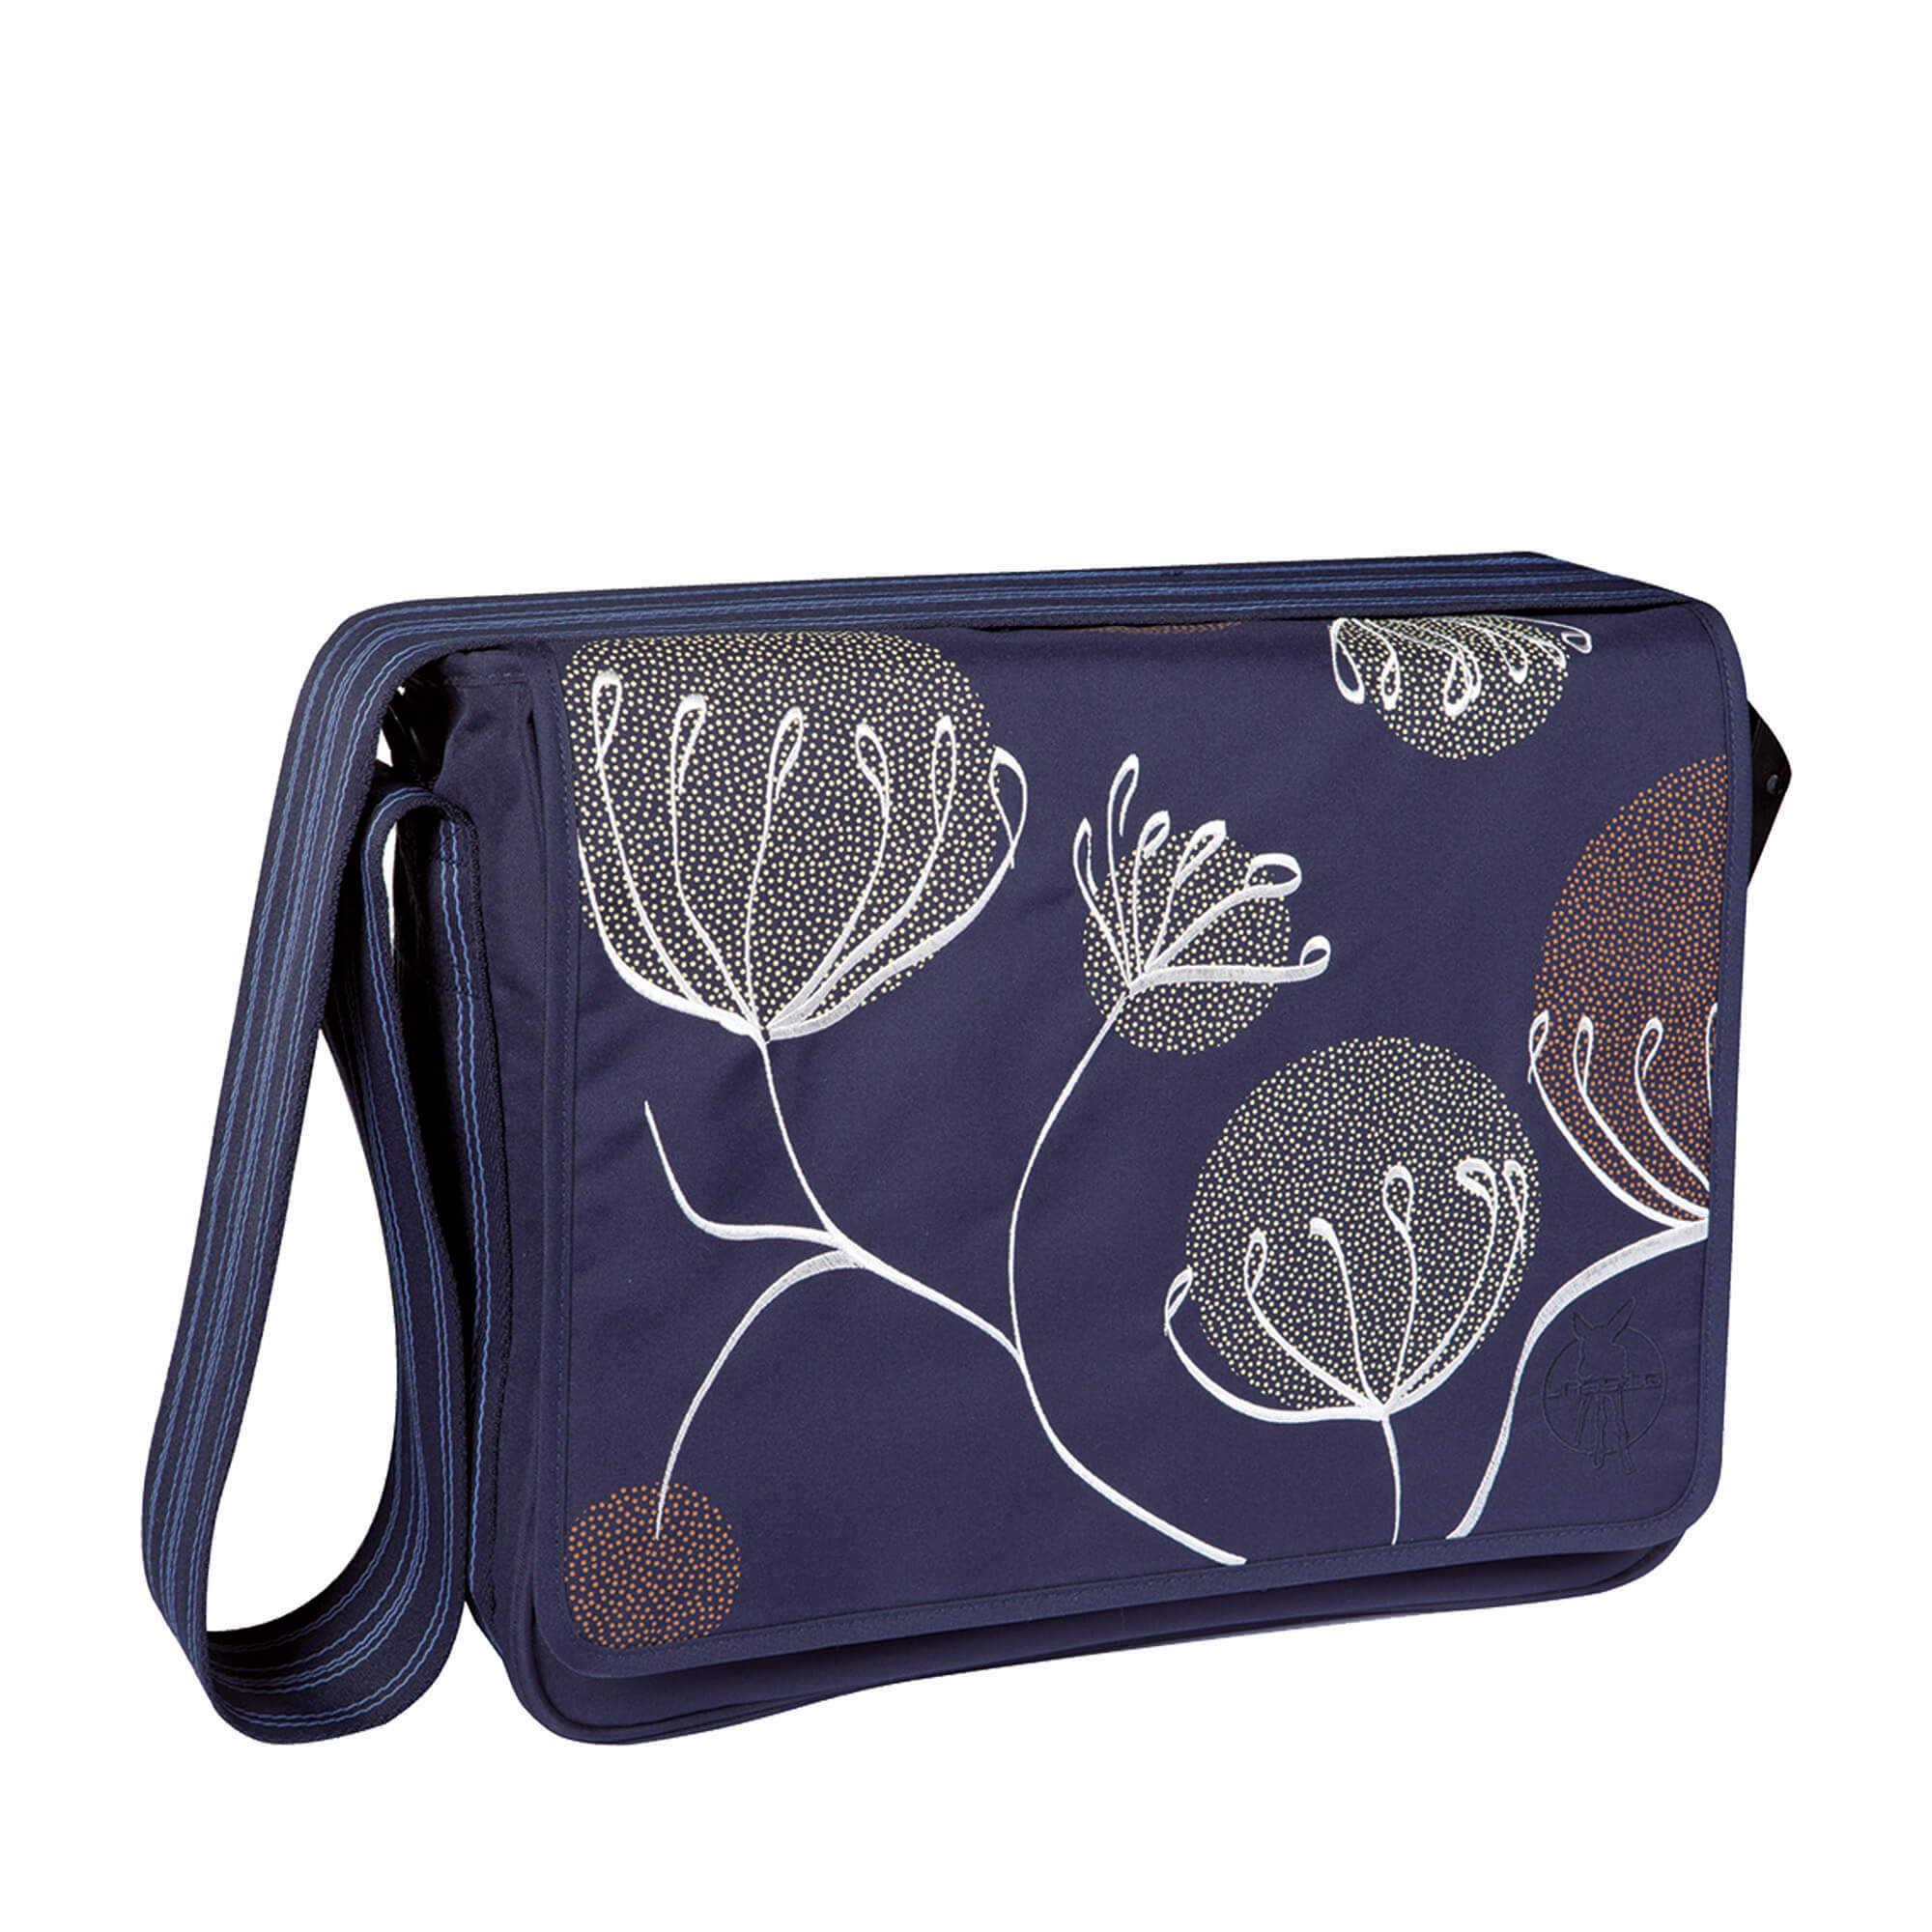 Rabat interchangeable Lassig Messenger Bag Casual Bloom ash bleu e3ORGcA4G